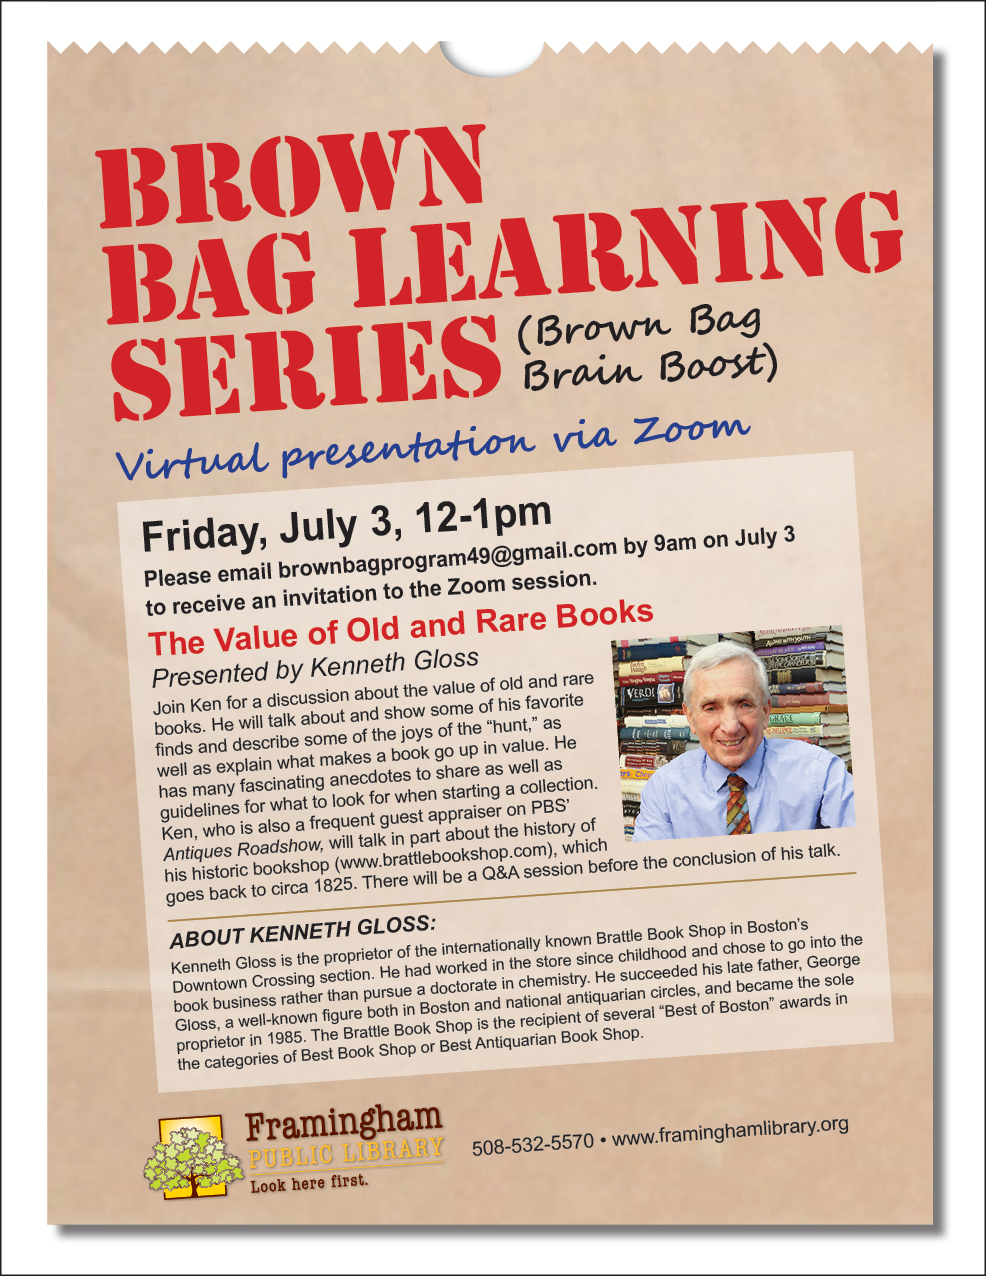 Brown Bag Learning Series: The Value of Old and Rare Books thumbnail Photo